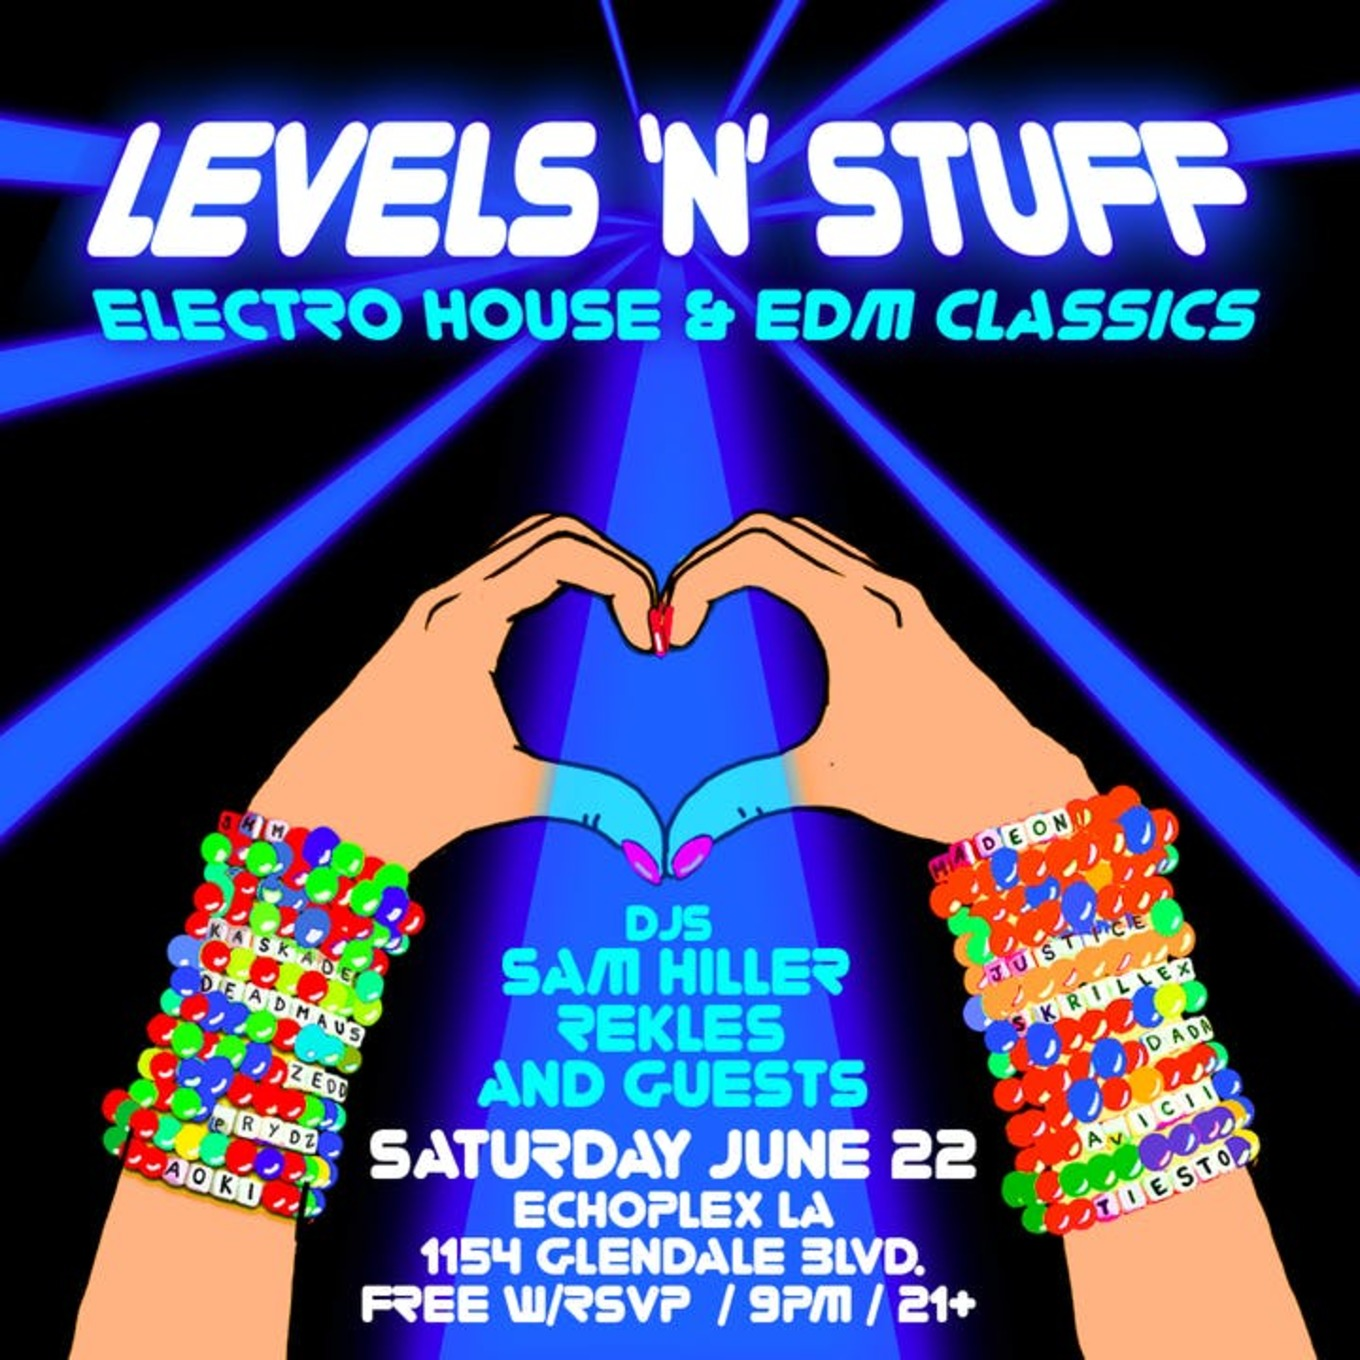 Levels N' Stuff: Electro House & EDM Classics - Tickets